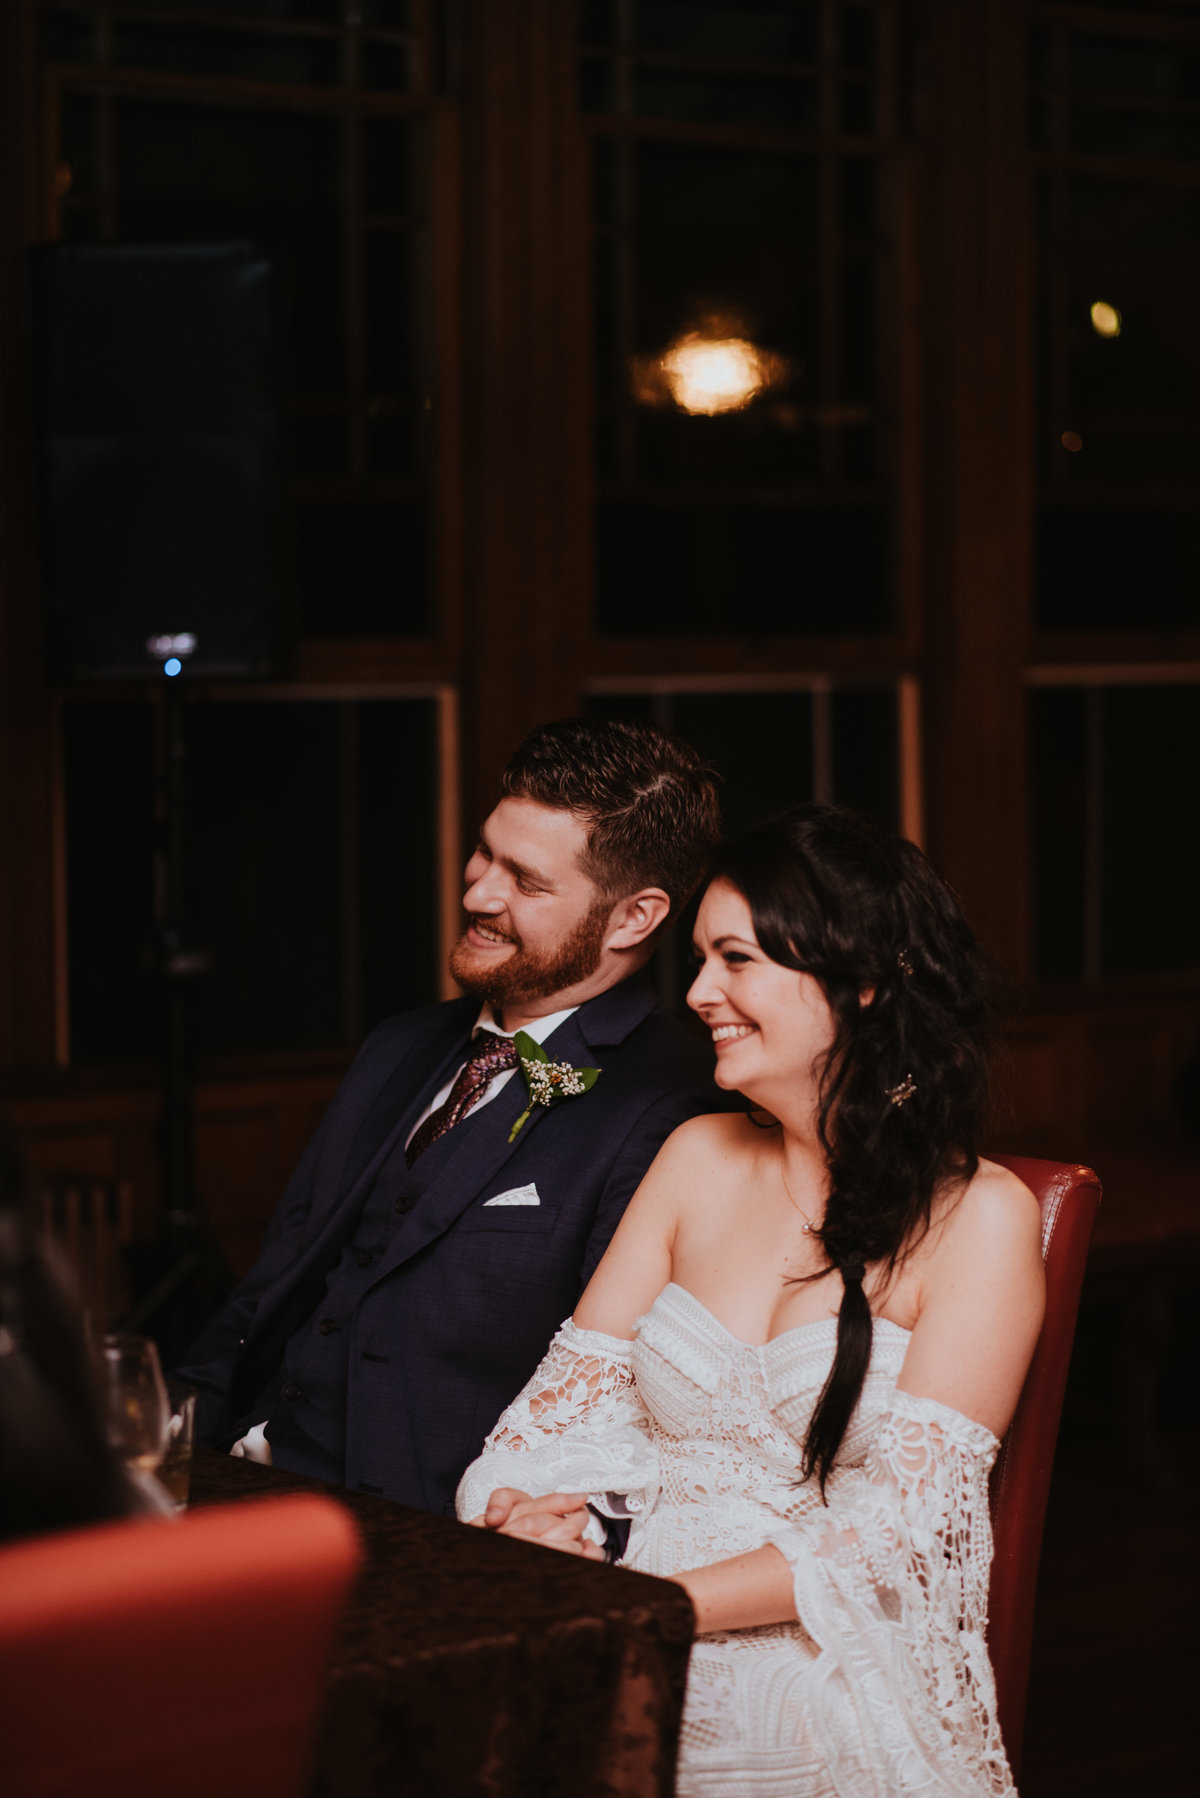 CatskillsJulietandEric2019WeddingPhotography (195 of 213)